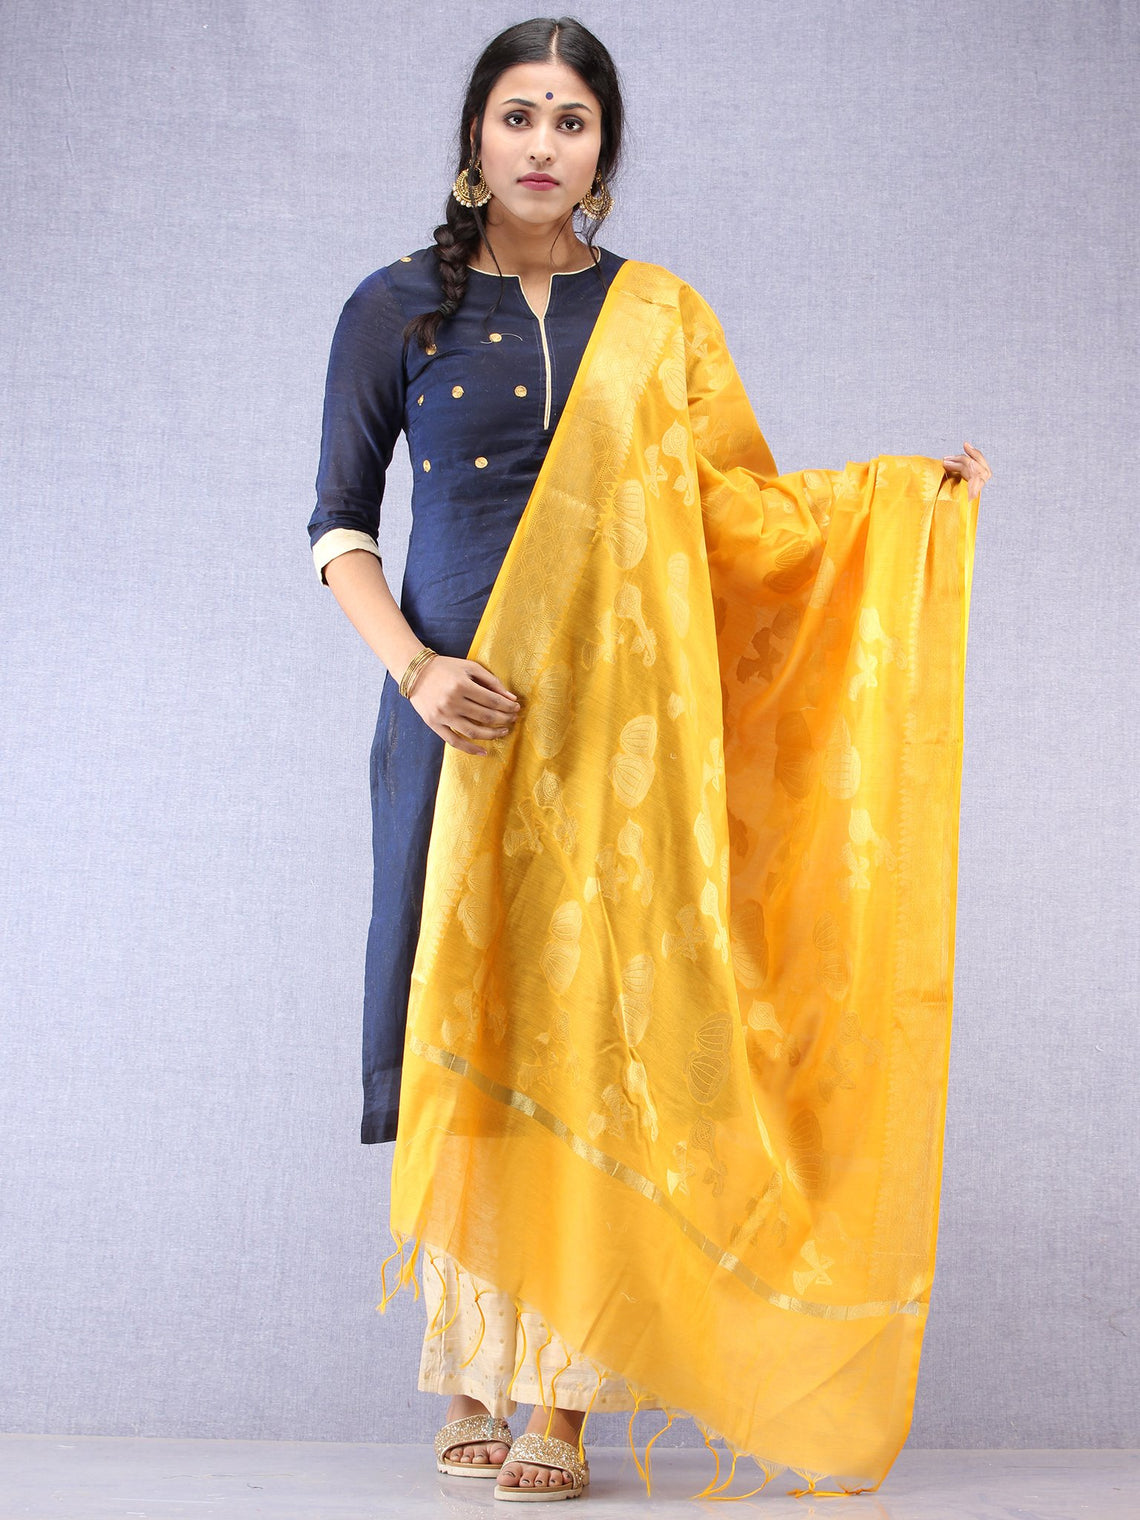 Banarasi Chanderi Dupatta With Zari Work - Bright Yellow & Gold - D04170806